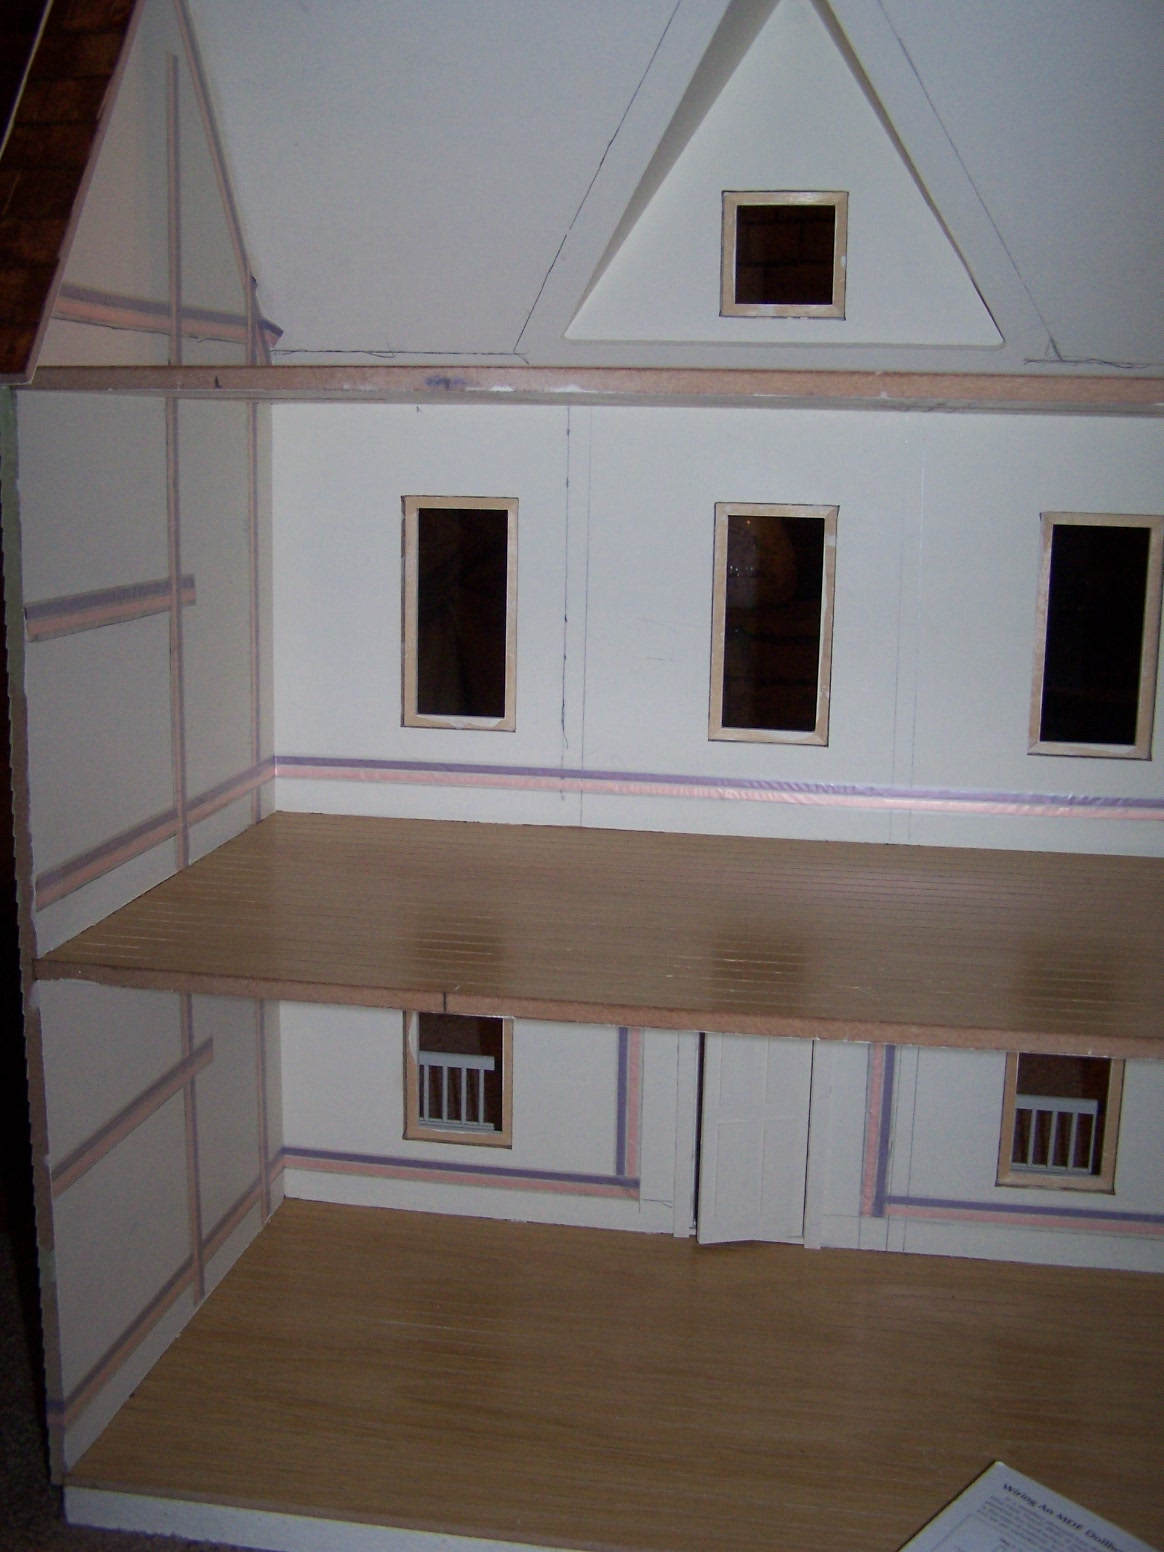 Homeschooling and Homesteading in the Present: Wiring a Dollhouse: A ...